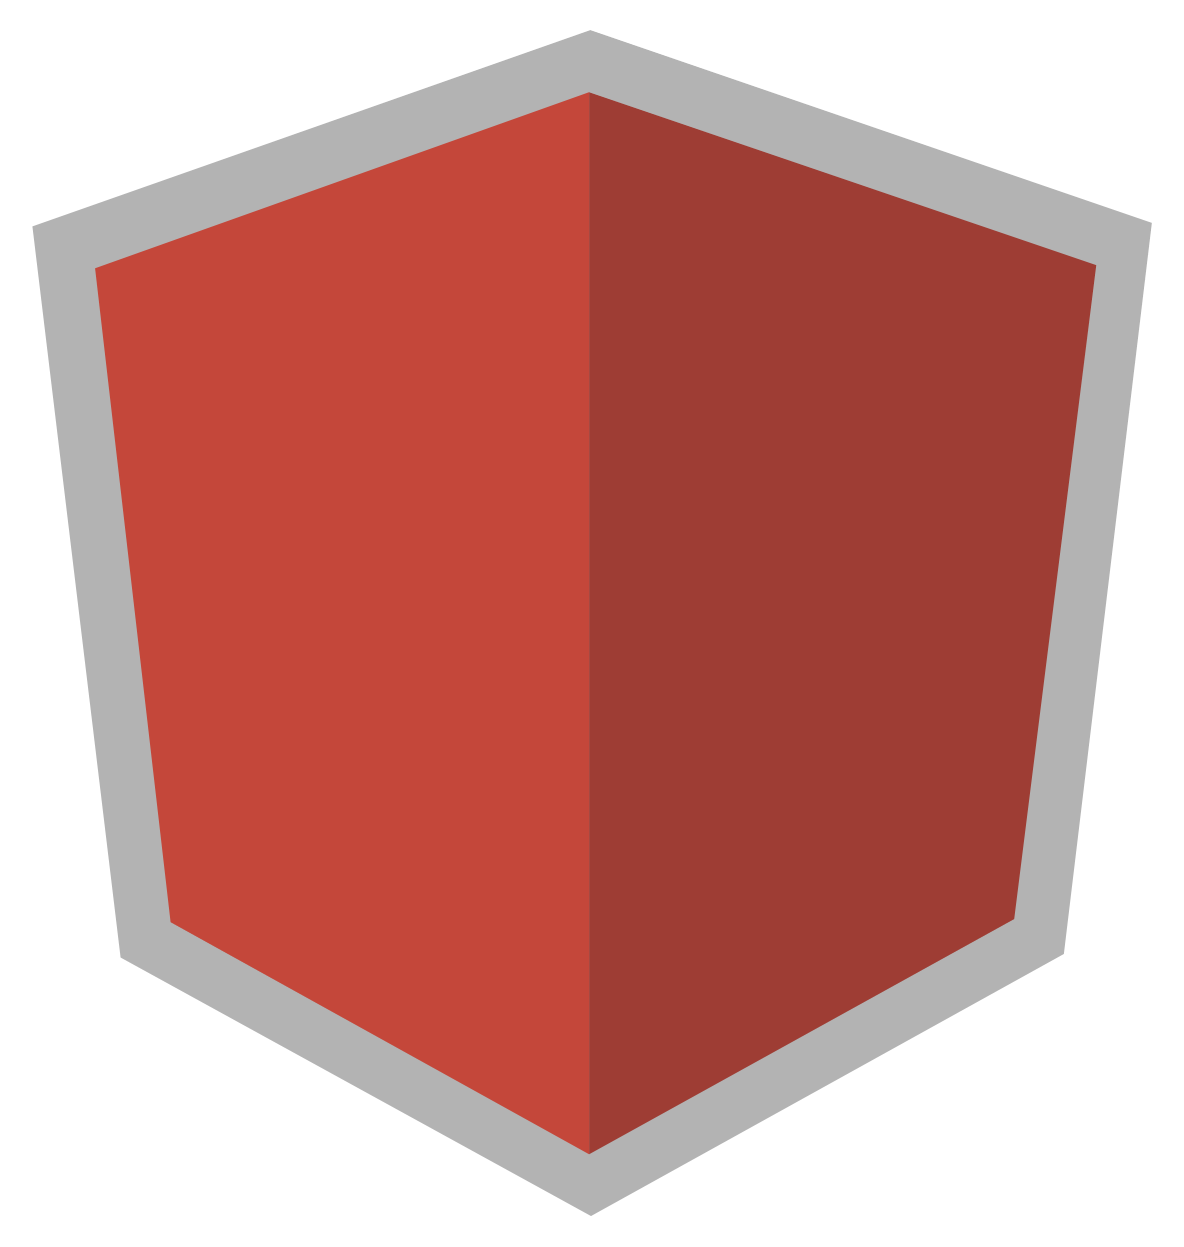 Ngcss angular binding in. Square clipart red color